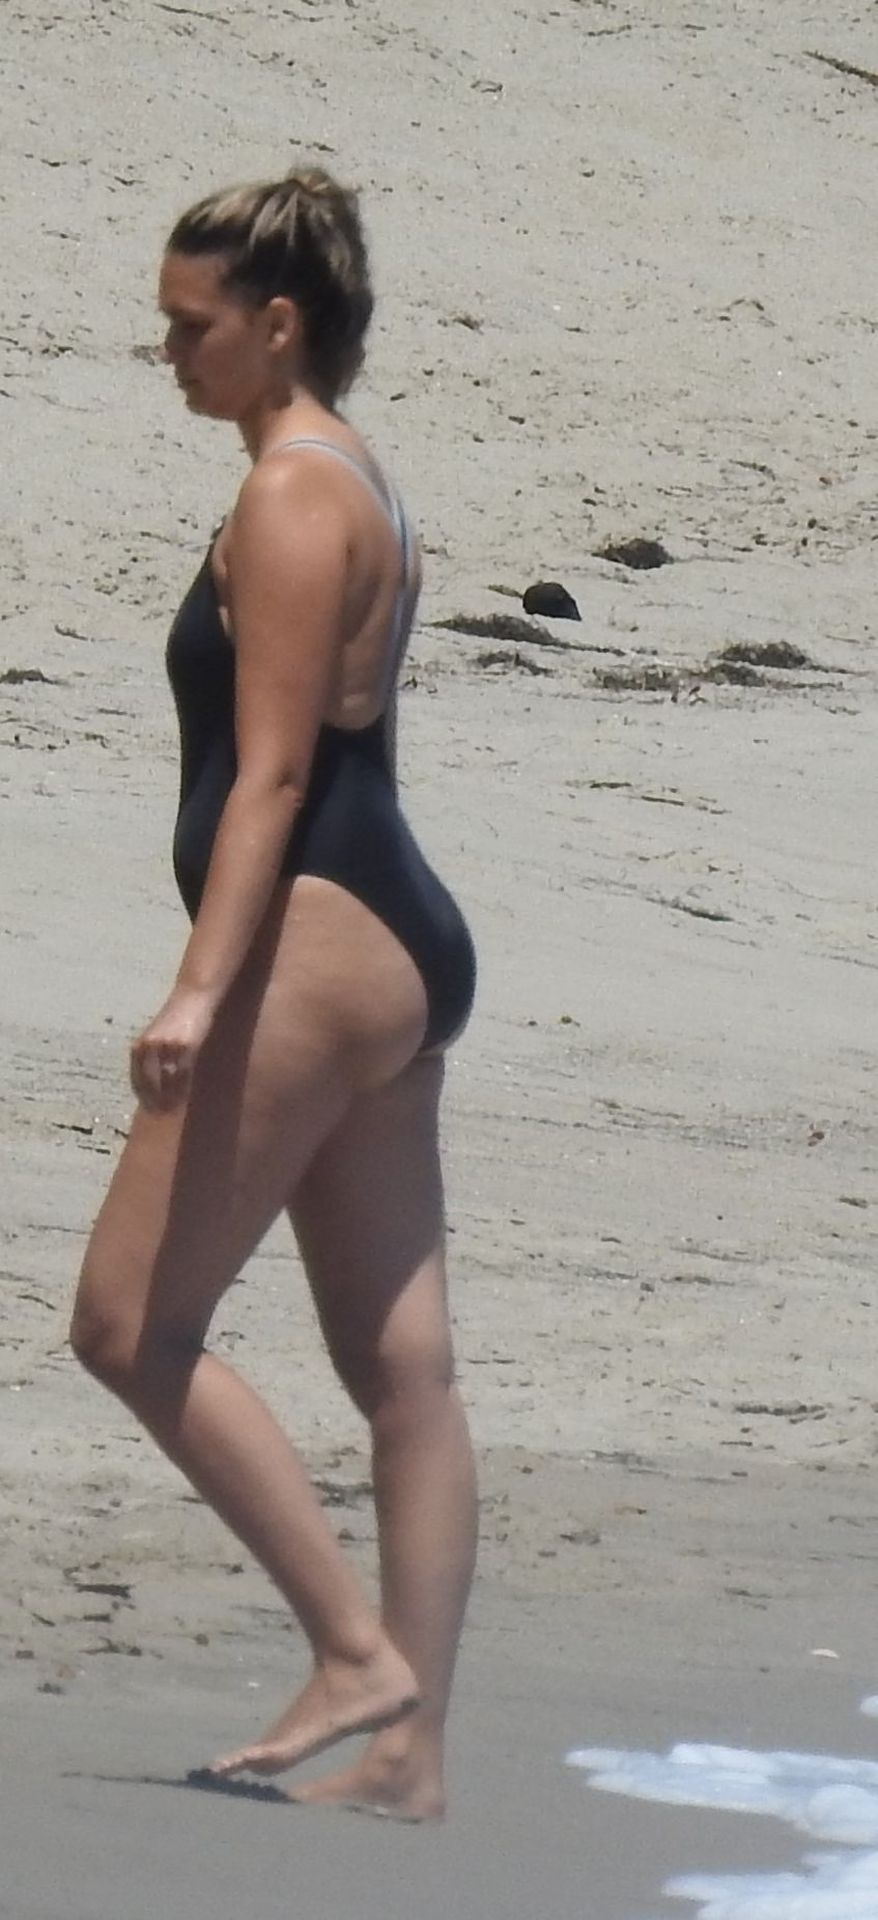 April Love Geary Shows Off Her Curves in a Black Swimsuit (61 Photos)